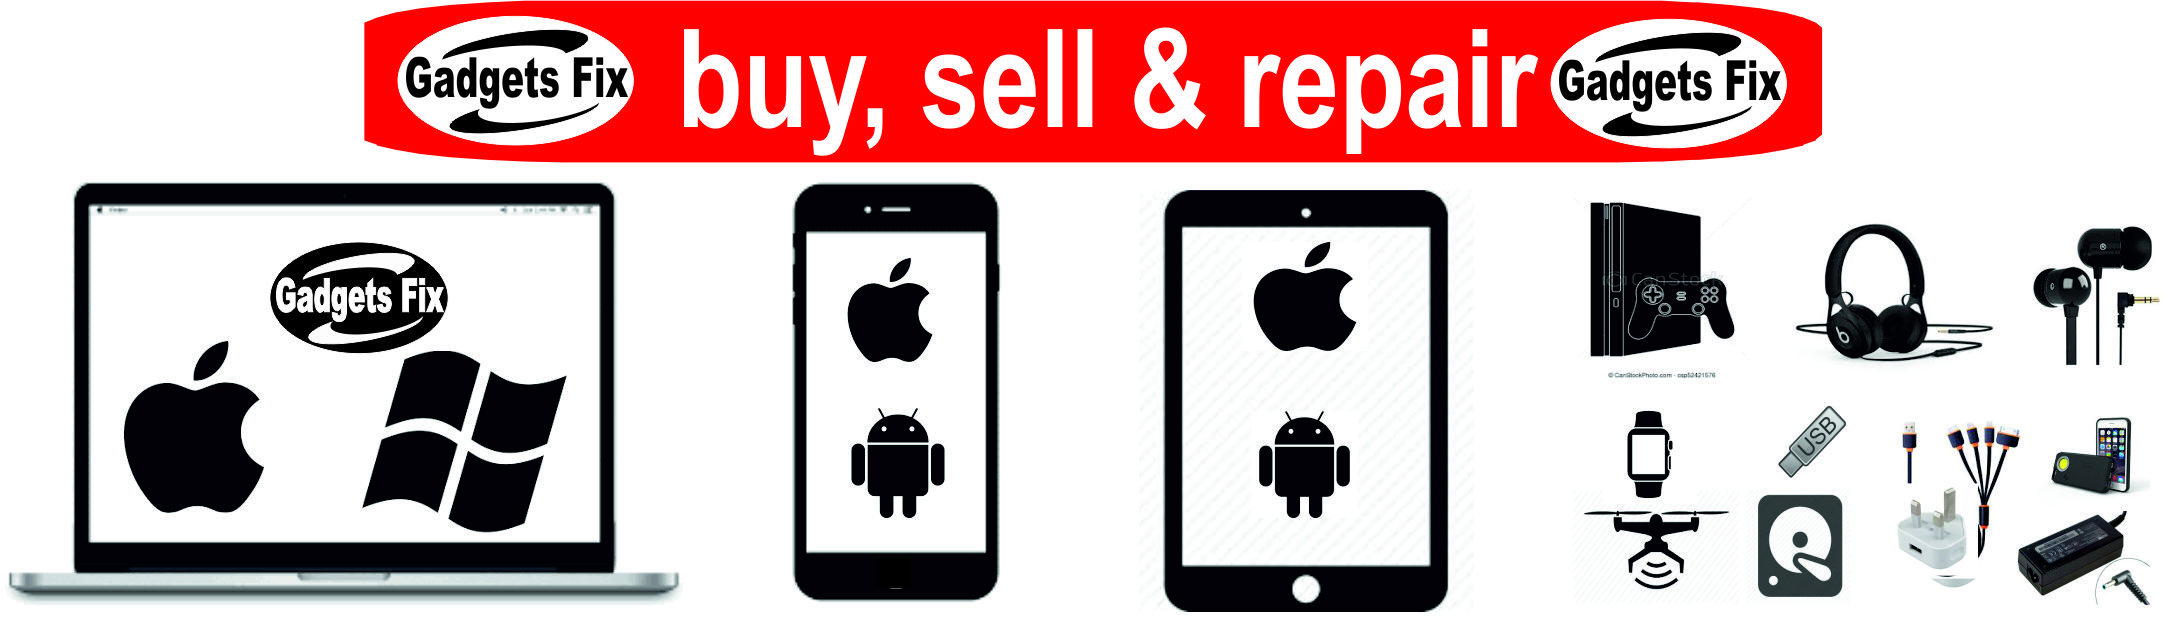 gadgets fix buy, sell & repair laptop, macbooks, iphones, smart phones,tablets,consoles